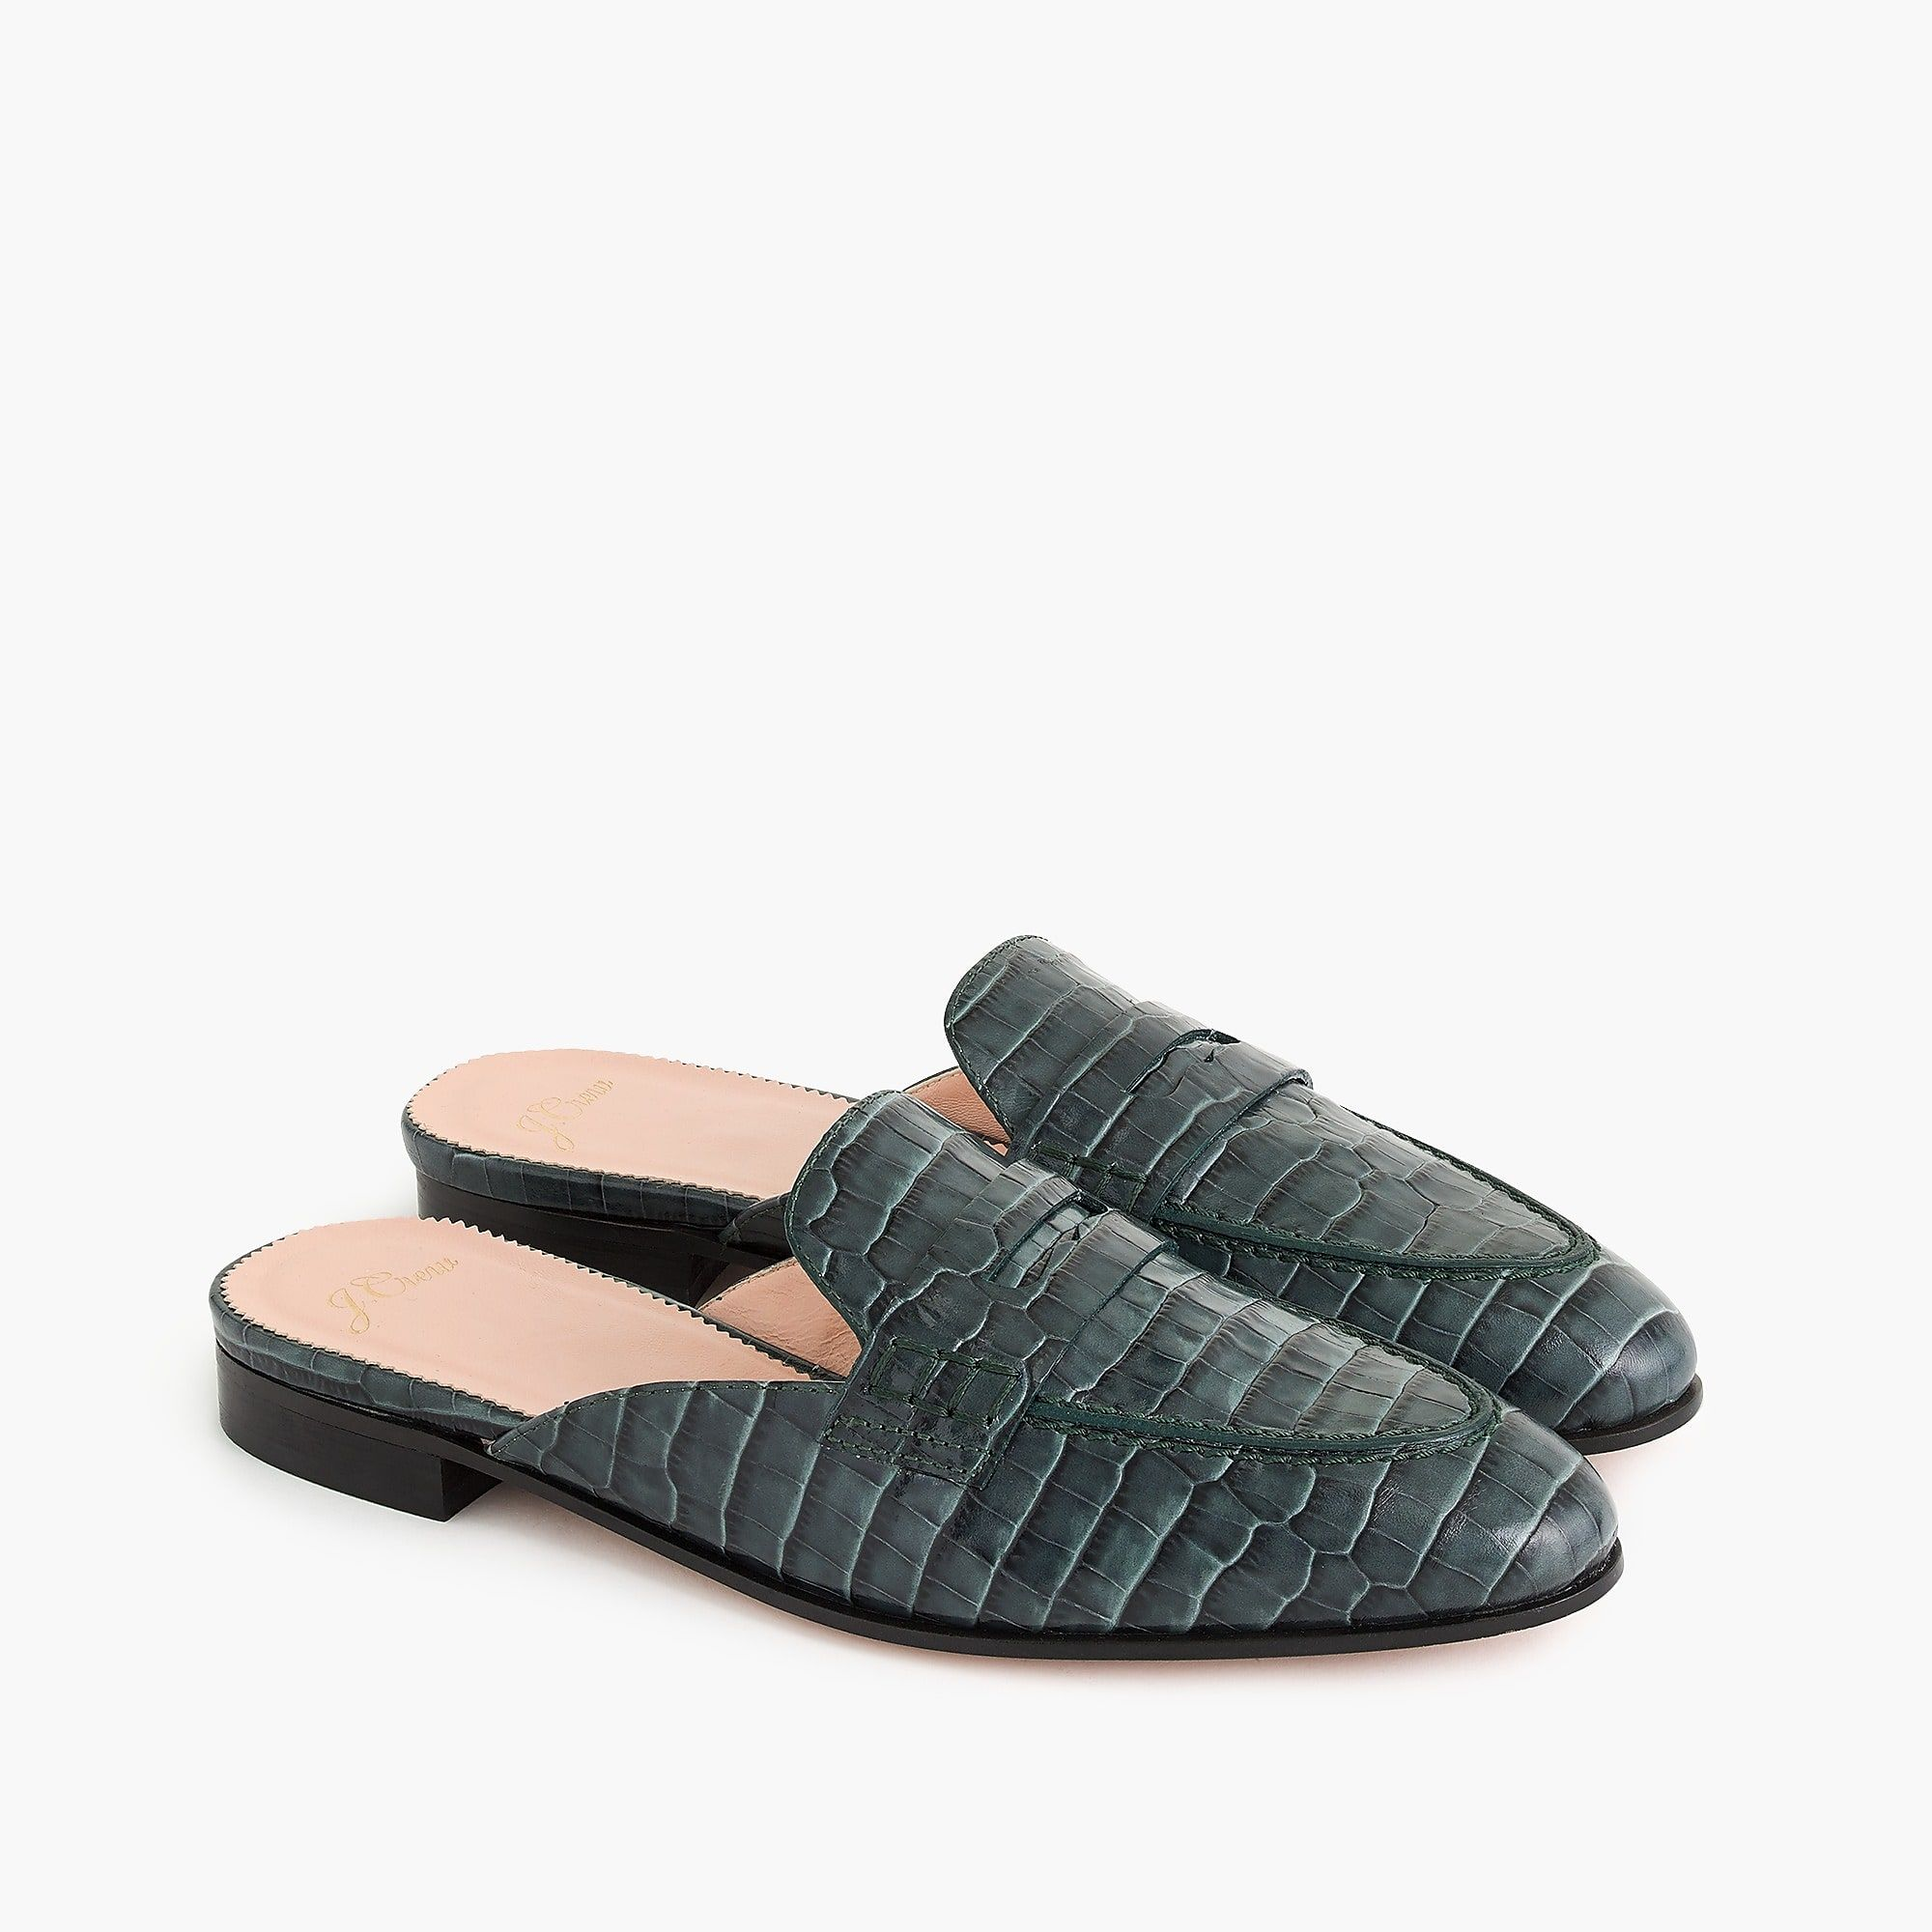 8200238ae44 J.Crew - Academy penny loafer mules in croc-embossed leather